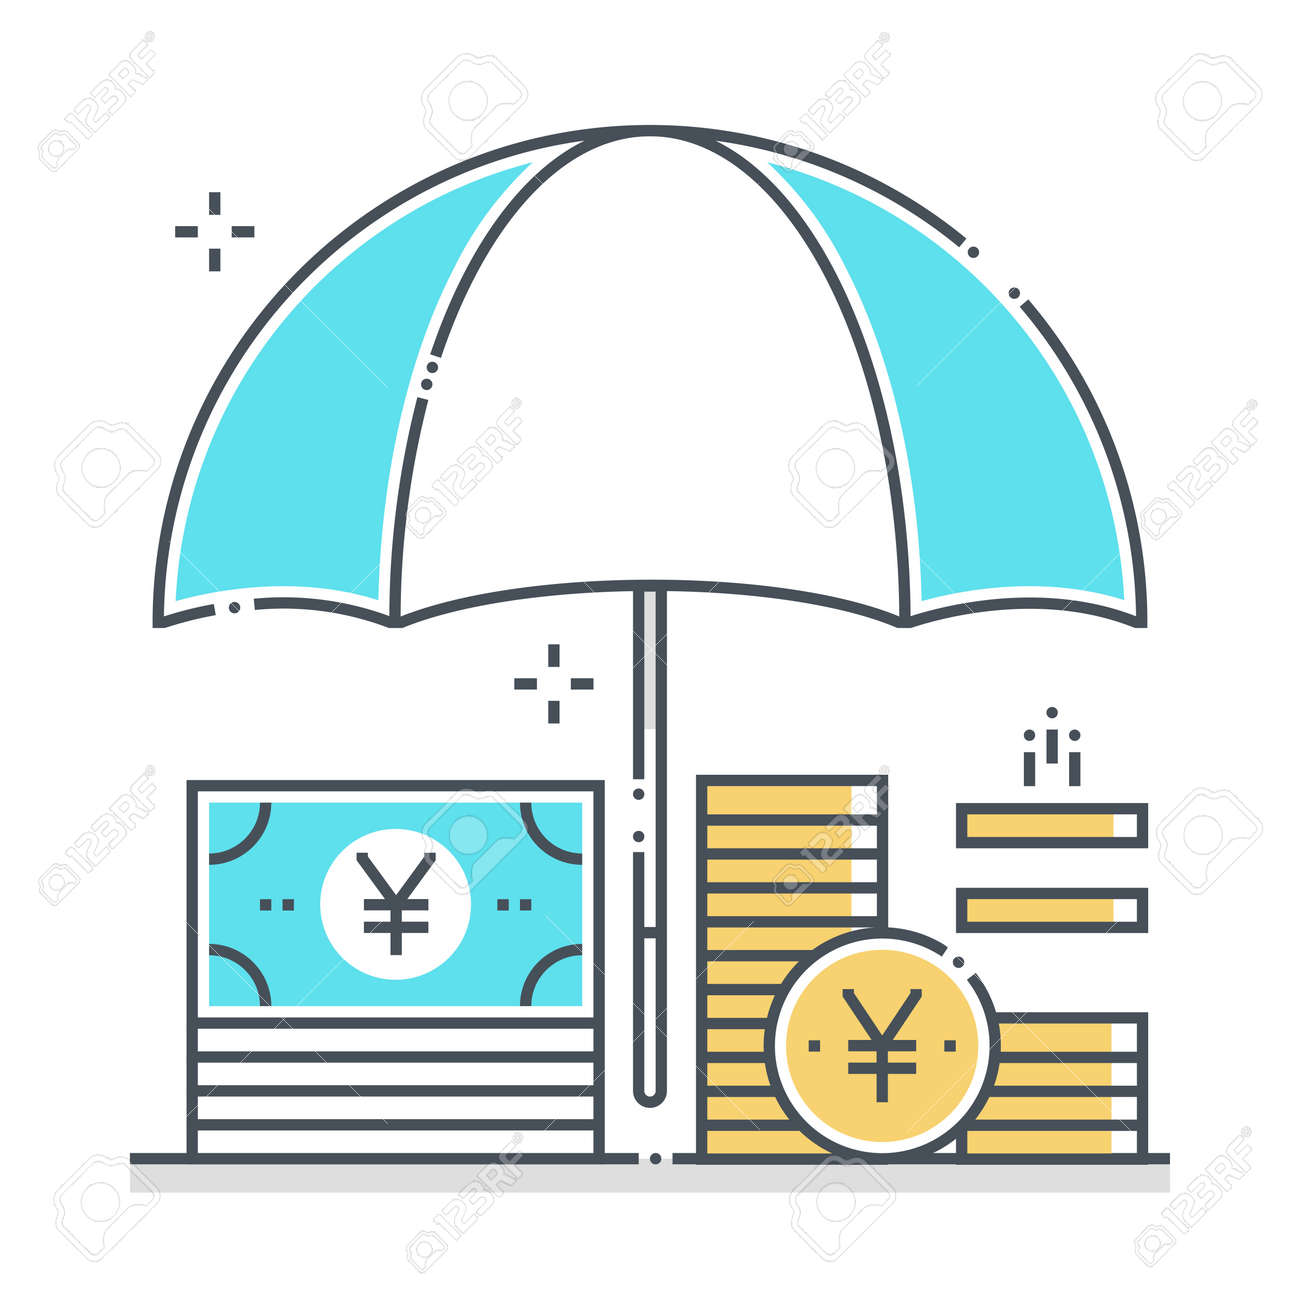 Income protection related color line vector icon, illustration. The icon is about assurance, umbrella, income, bank, account, money, coin. The composition is infinitely scalable. - 163698144